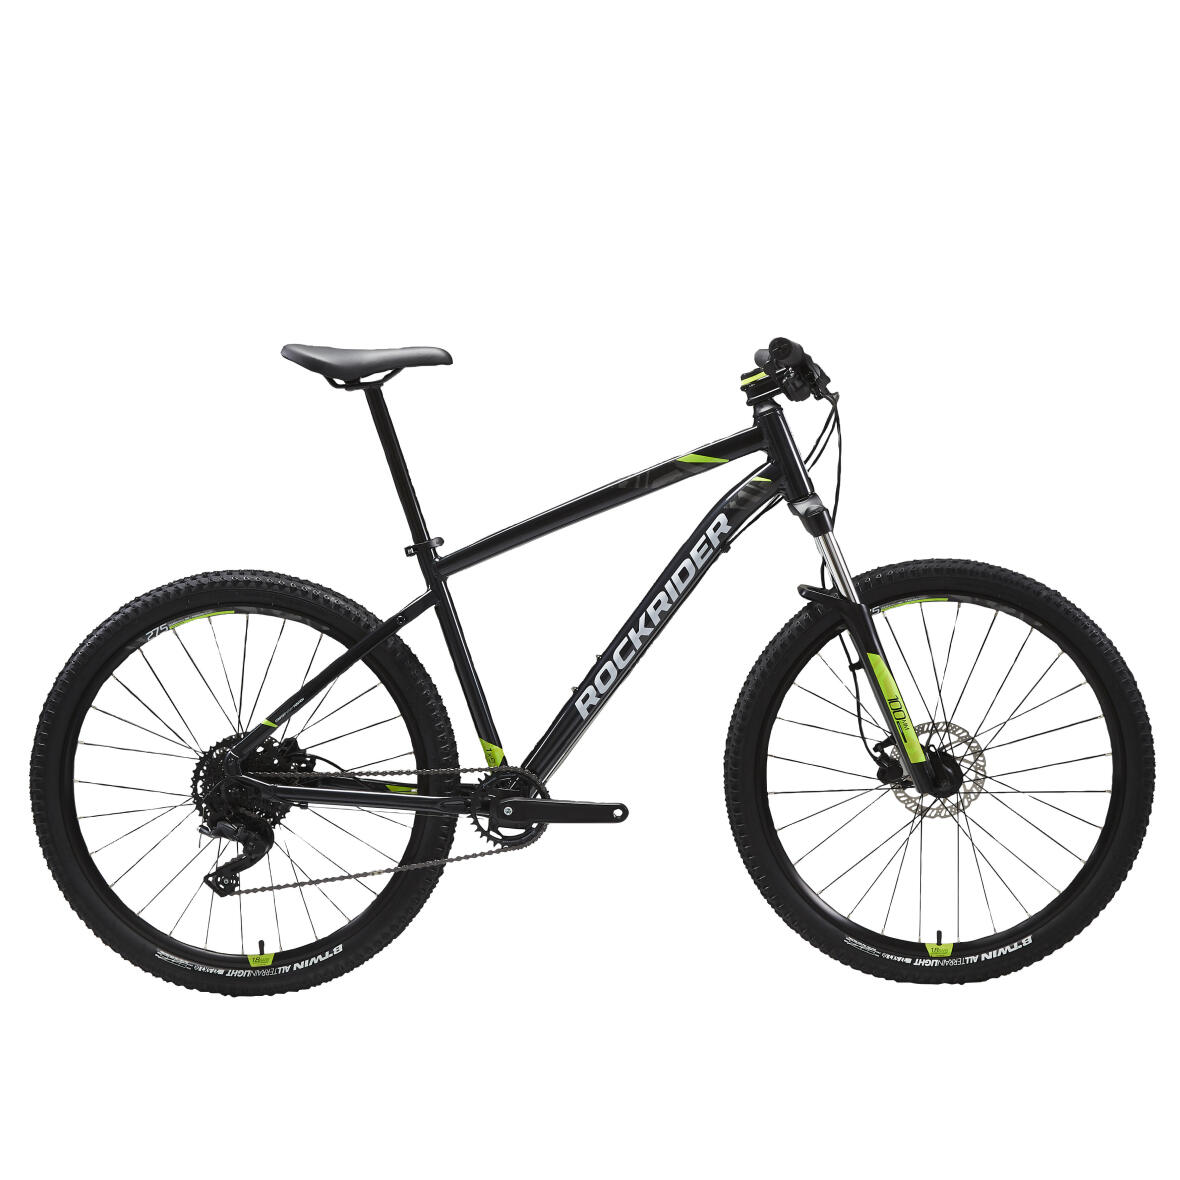 ROCKRIDER ST 530 MOUNTAIN BIKE - BLACK